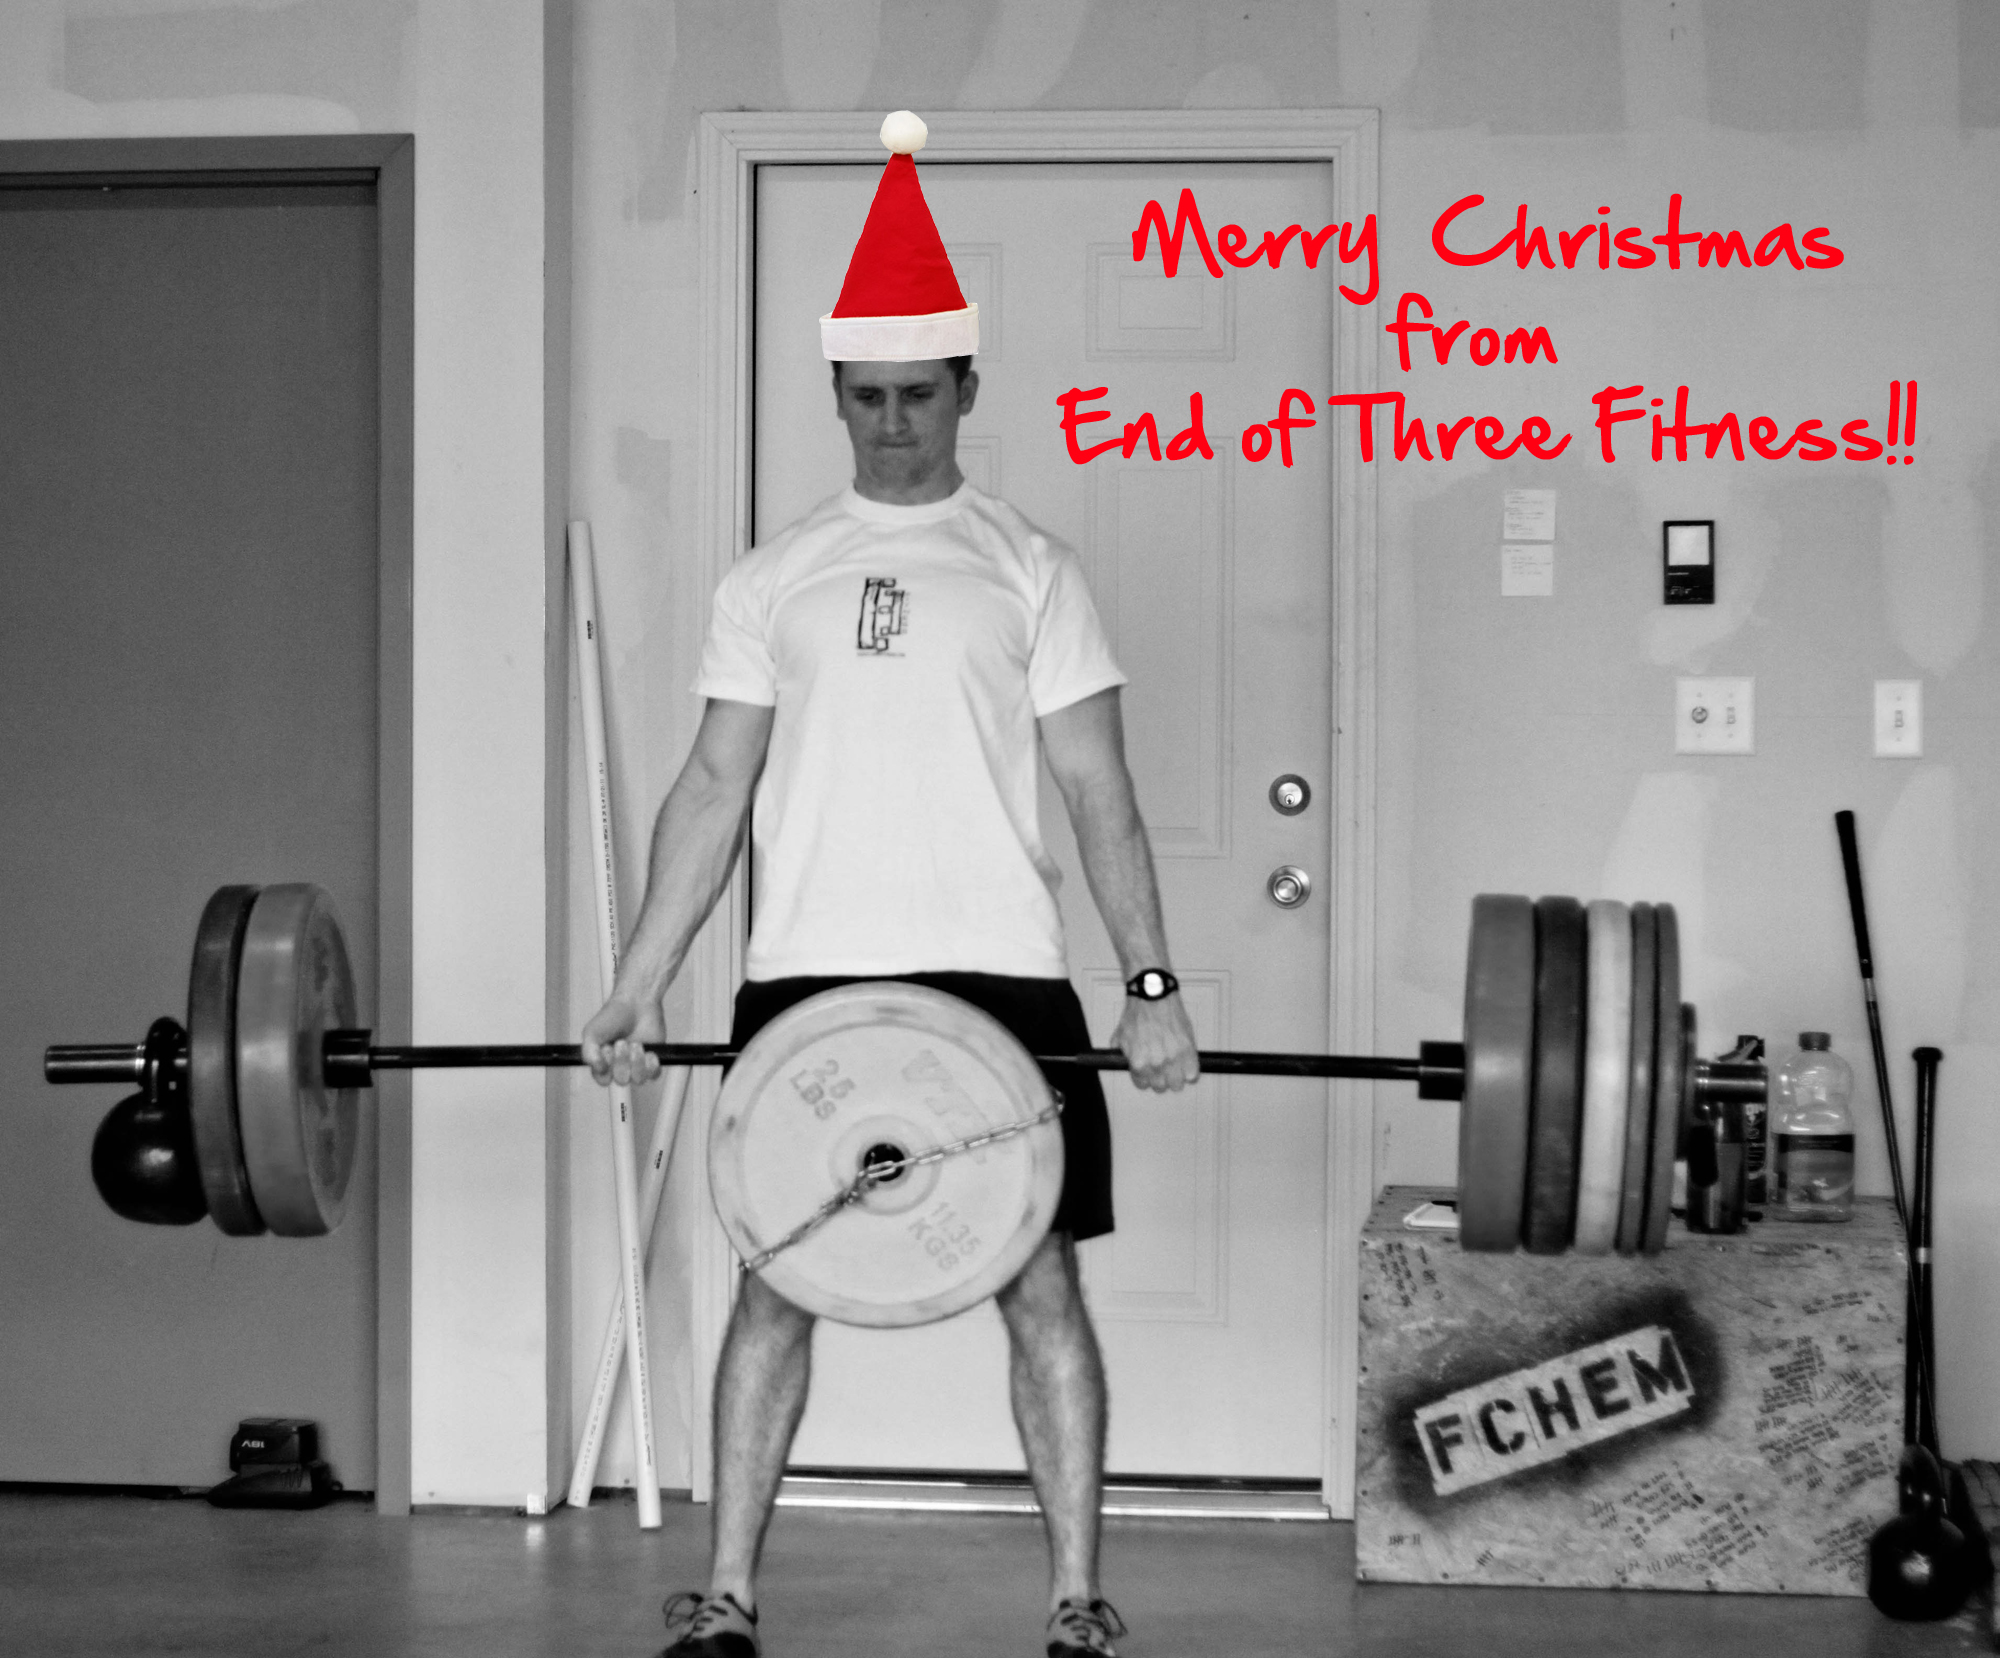 Merry christmas from end of three fitness